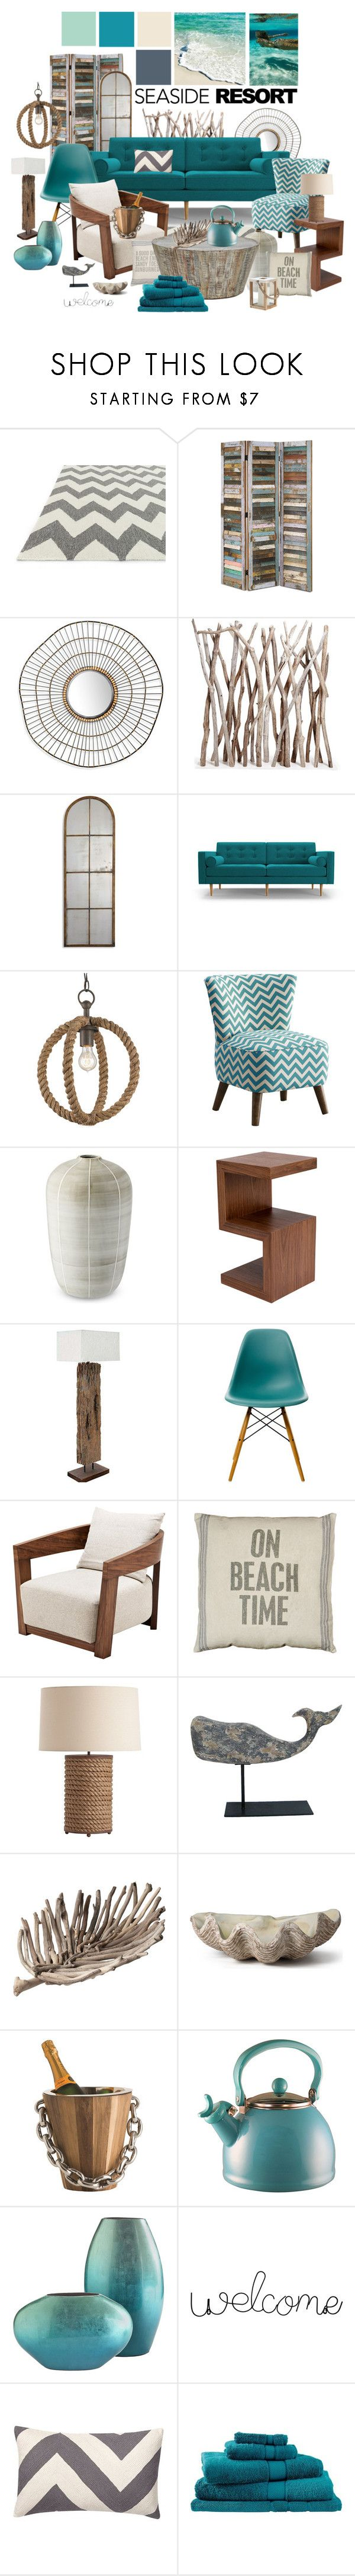 """Seaside resort"" by ellergy ❤ liked on Polyvore featuring interior, interiors, interior design, home, home decor, interior decorating, Loloi Rugs, Joybird, Dot & Bo and Vitra"